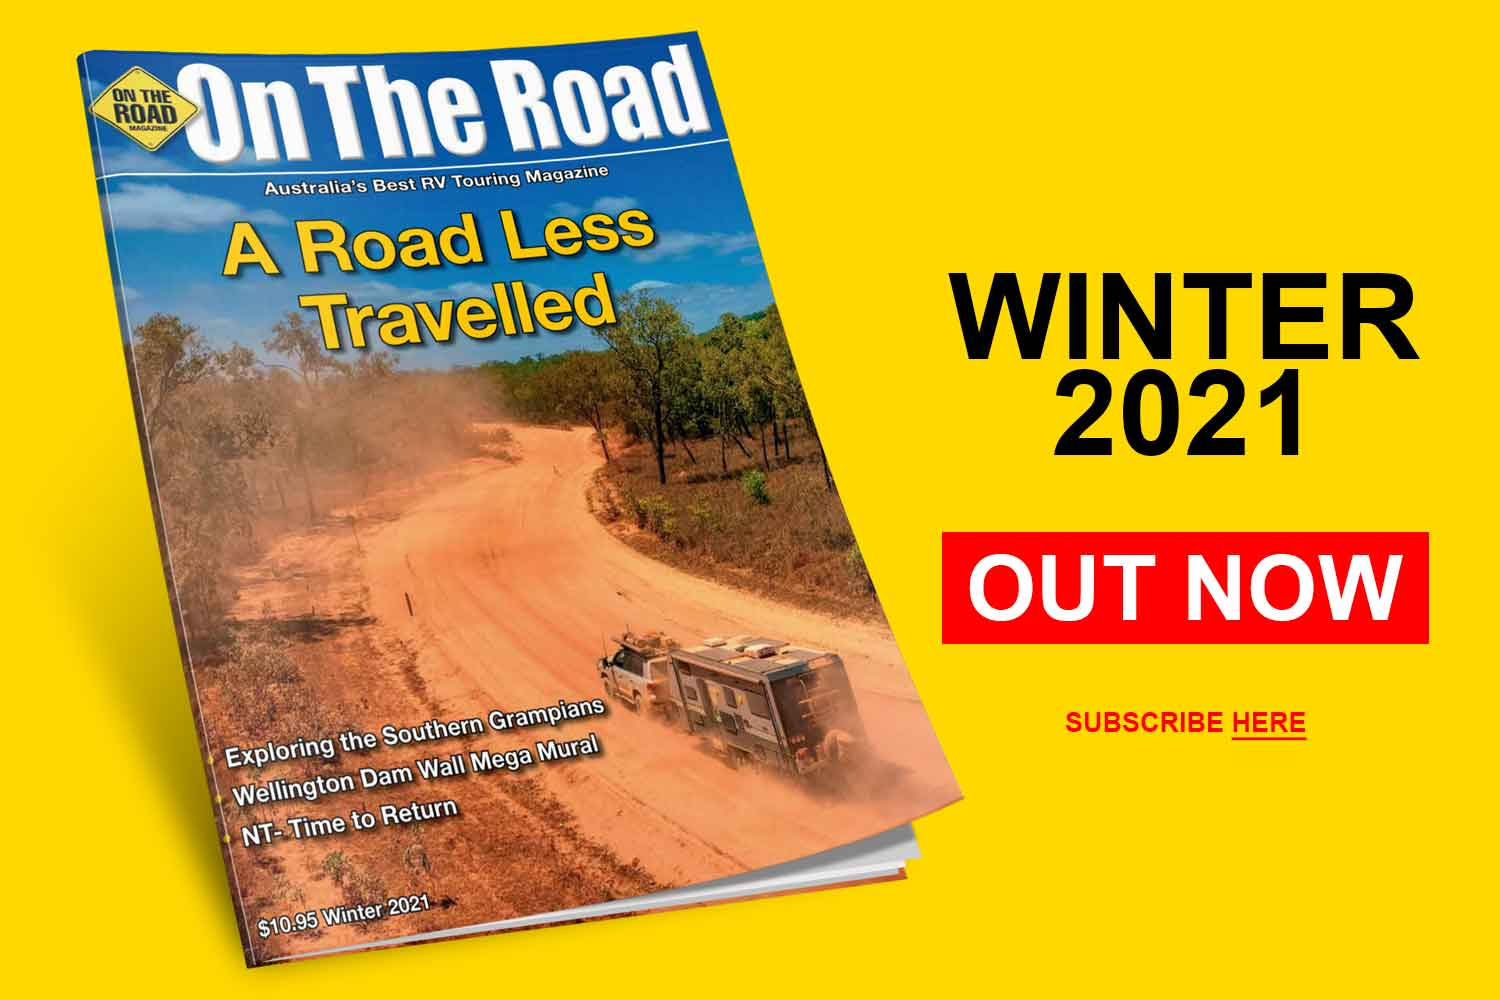 SUBSCRIBE TO ON THE ROAD MAGAZINE